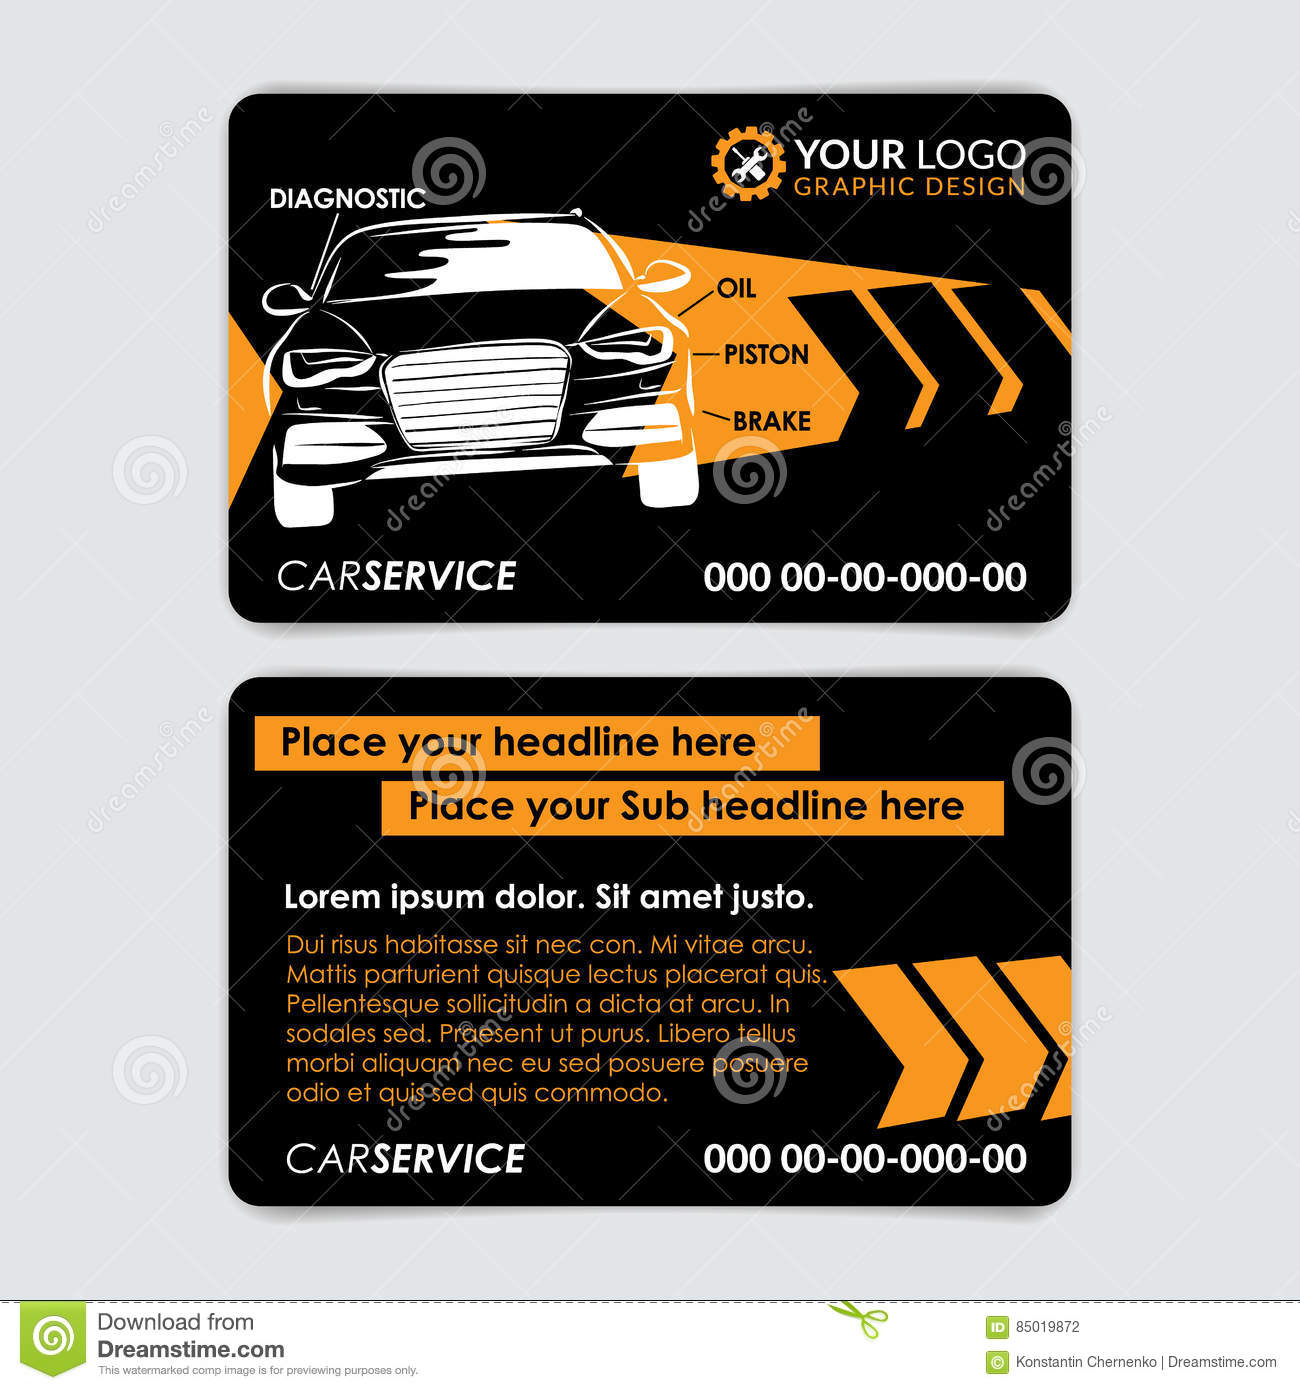 Auto repair business card template create your own business cards download auto repair business card template create your own business cards stock vector fbccfo Image collections